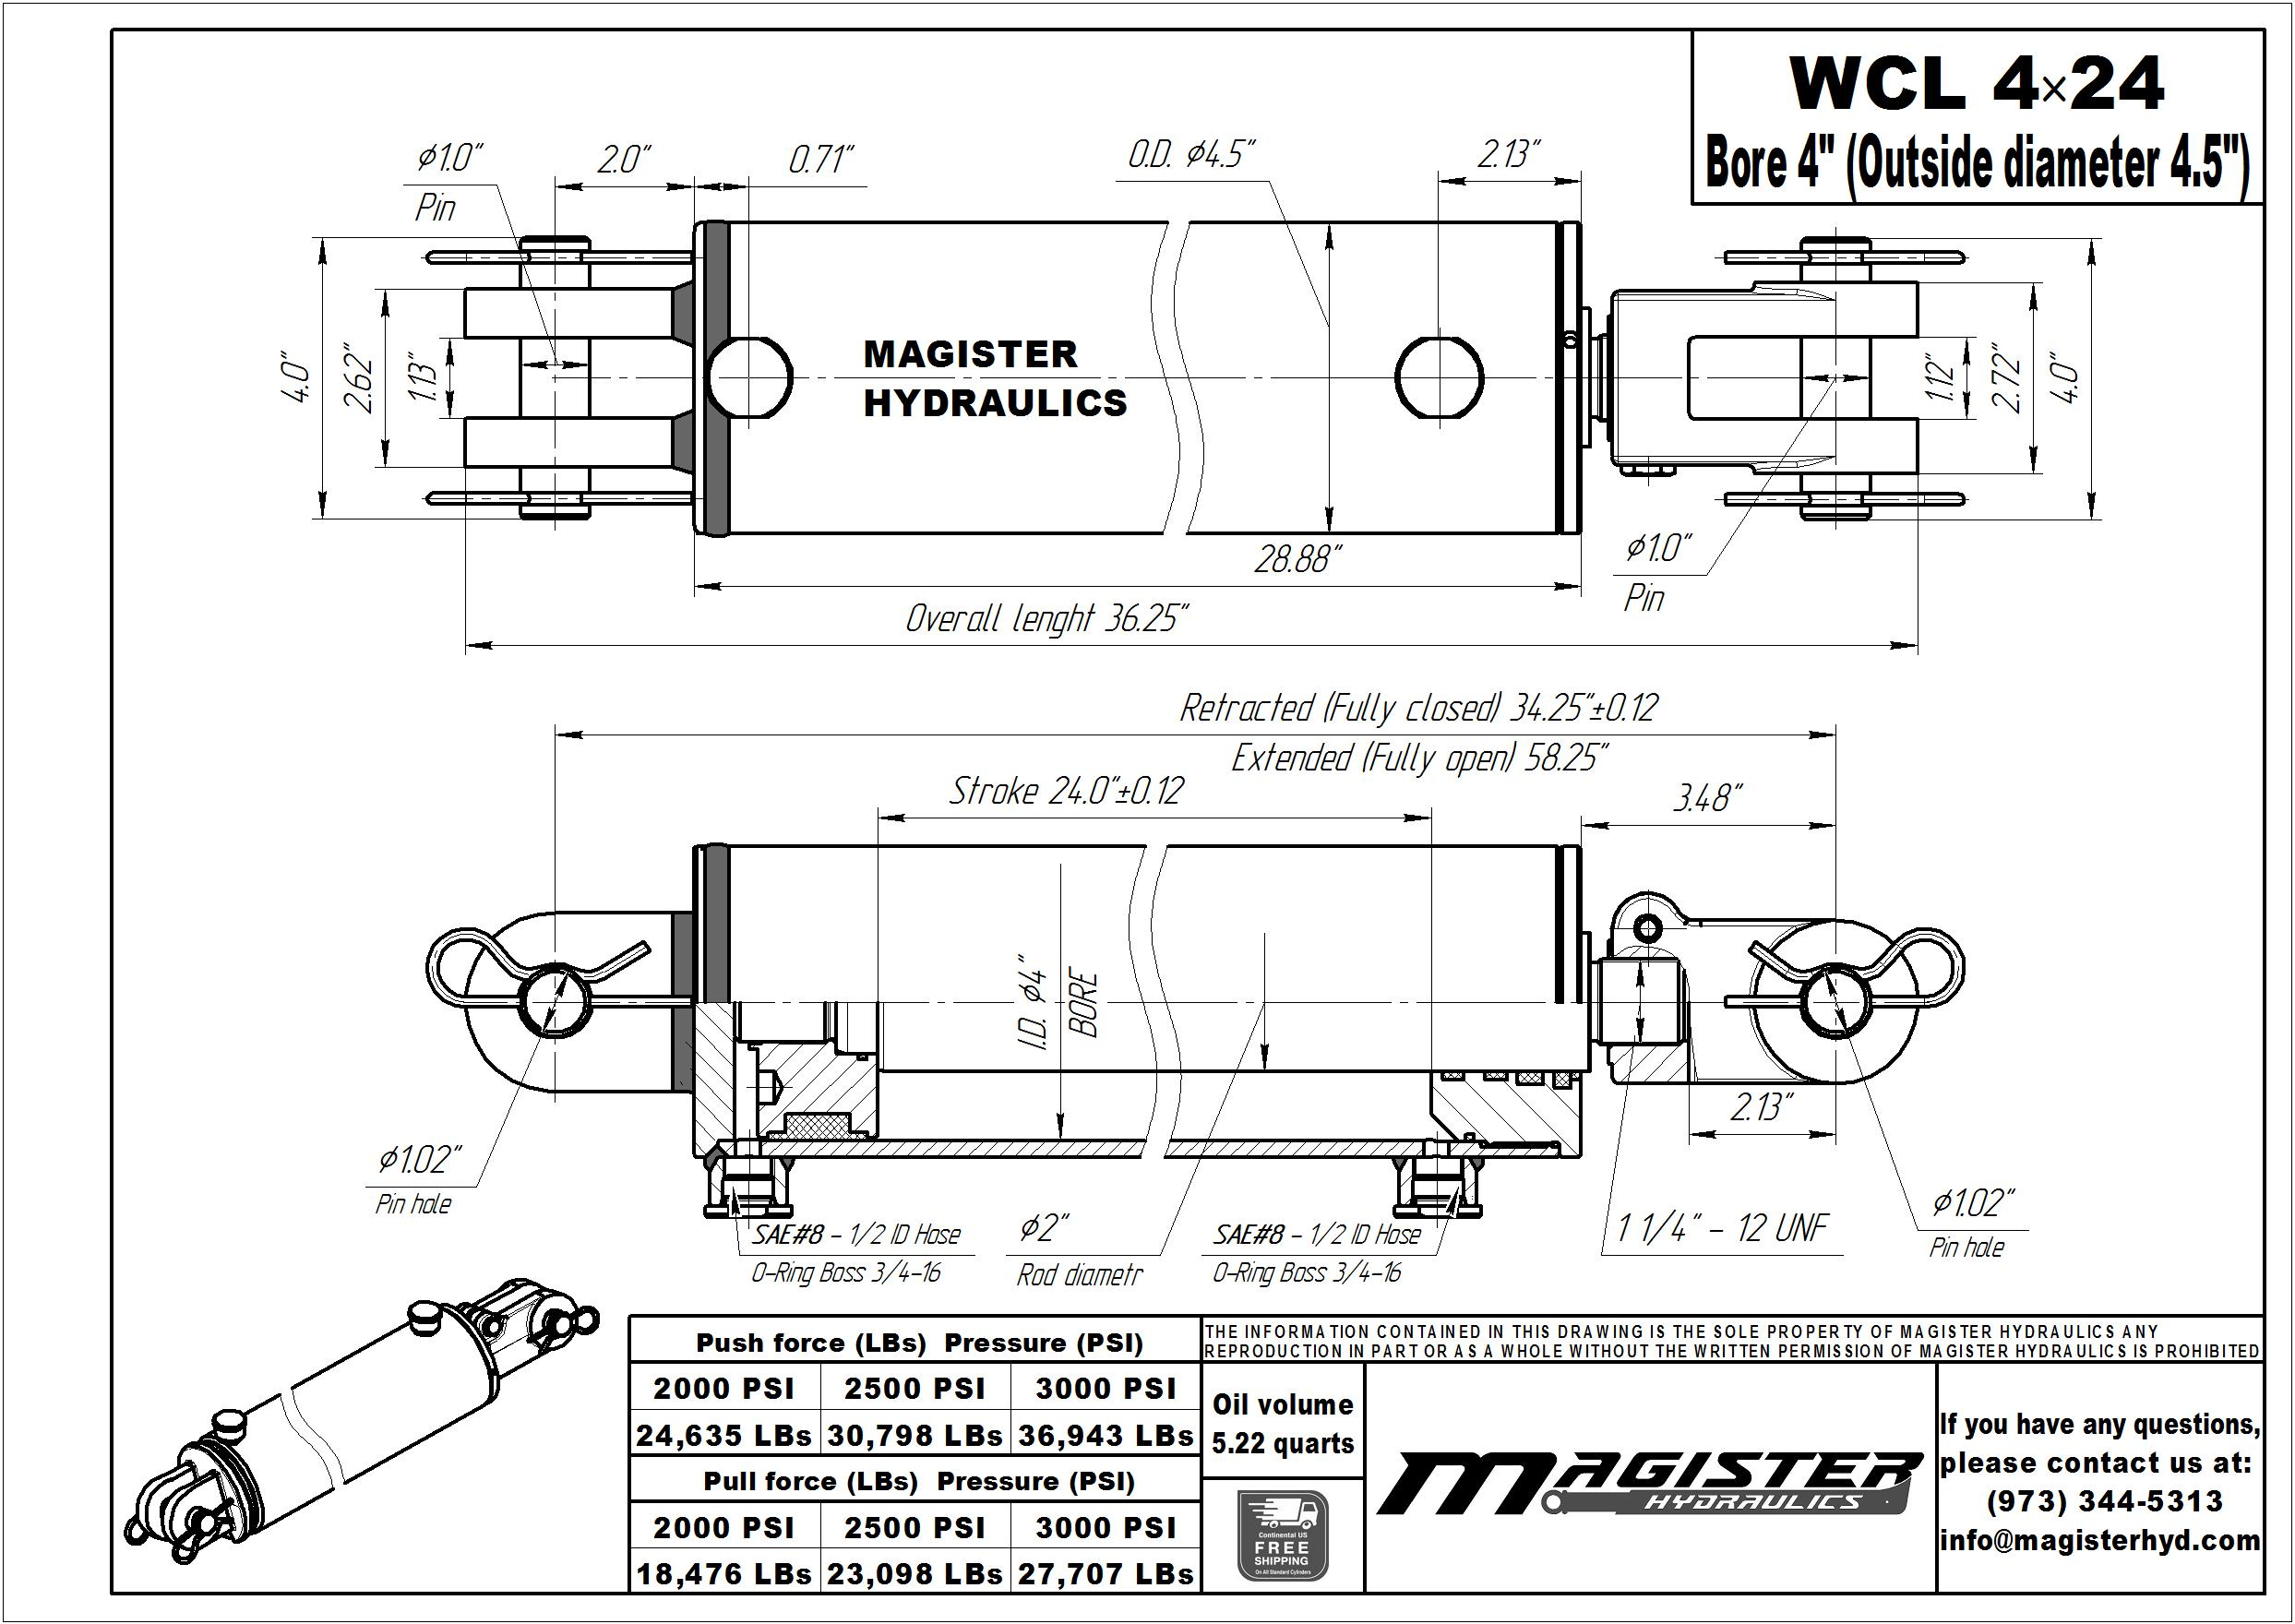 4 bore x 24 stroke hydraulic cylinder, welded clevis double acting cylinder | Magister Hydraulics